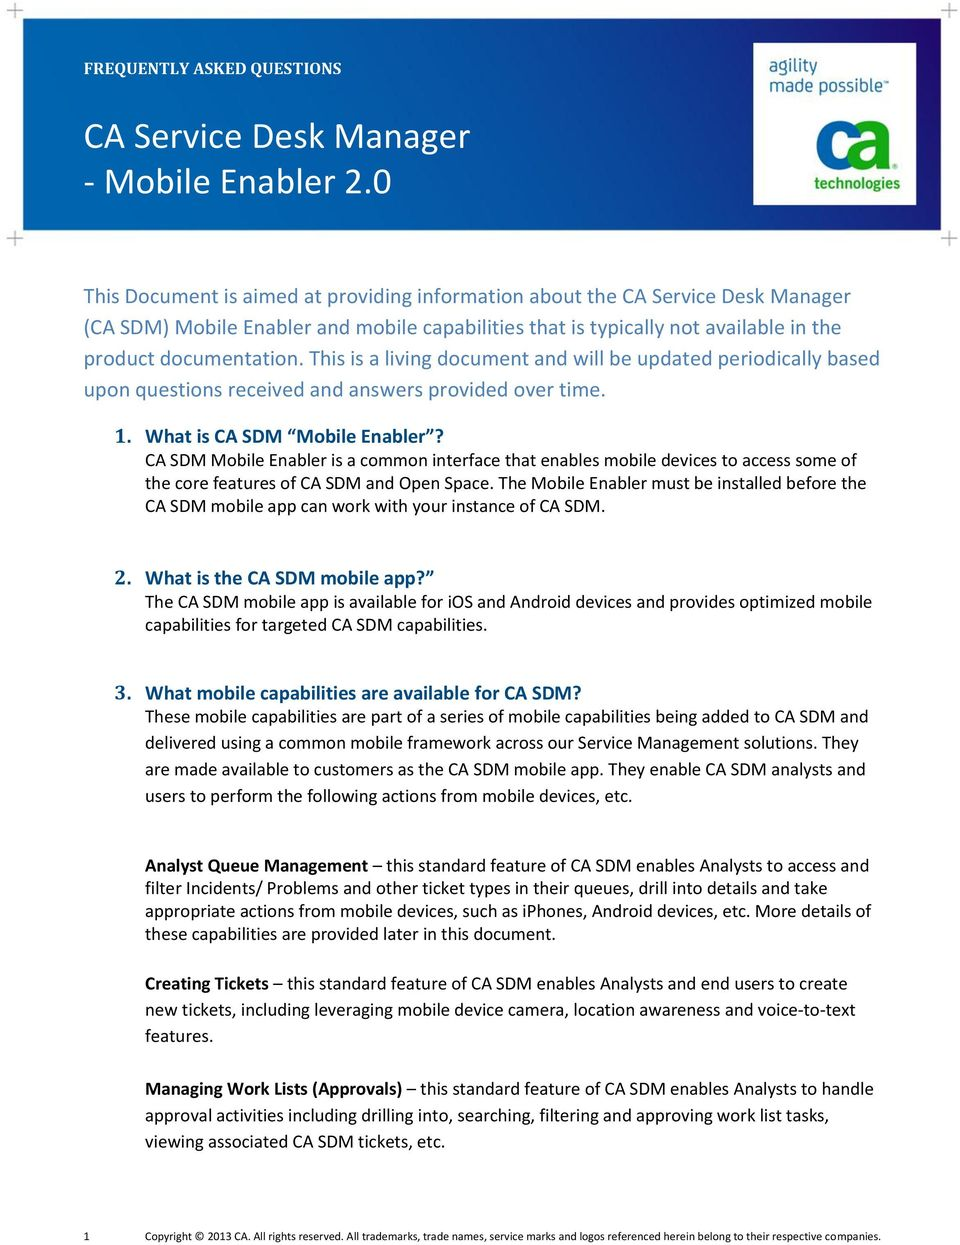 CA SDM Mobile Enabler is a common interface that enables mobile devices to access some of the core features of CA SDM and Open Space.